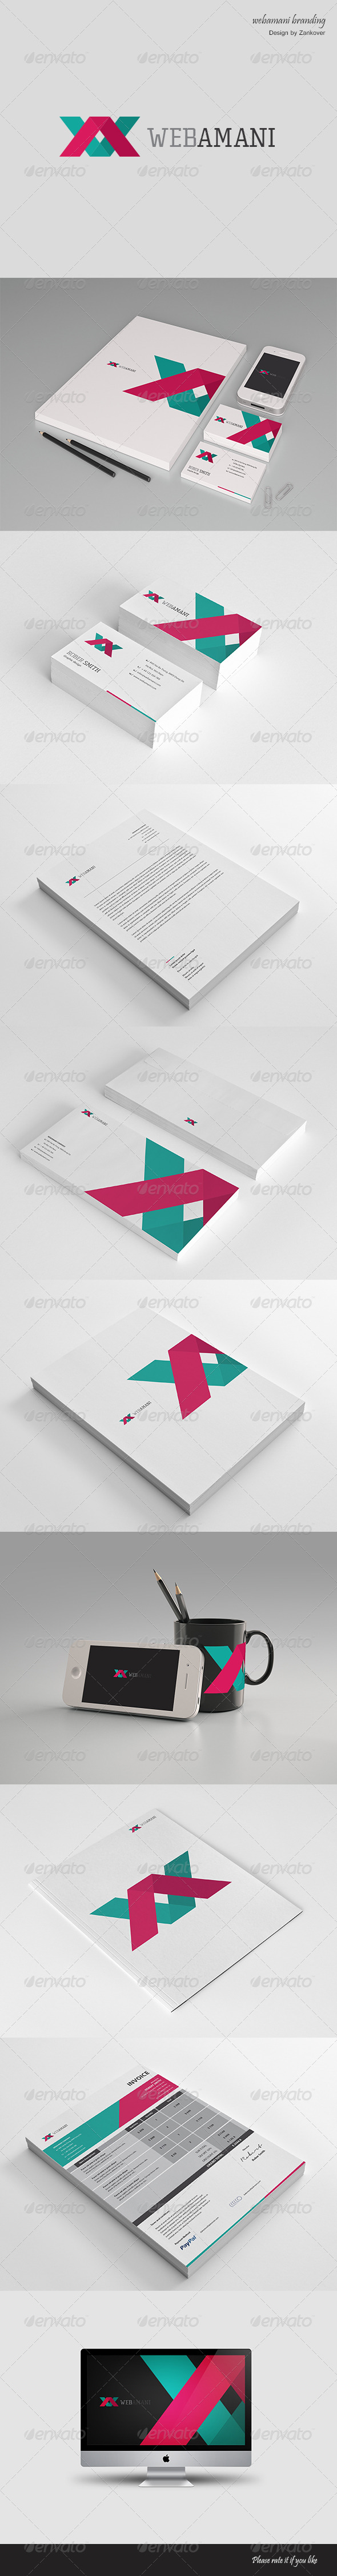 GraphicRiver Webamani Modern Stationary & Invoice 4578202